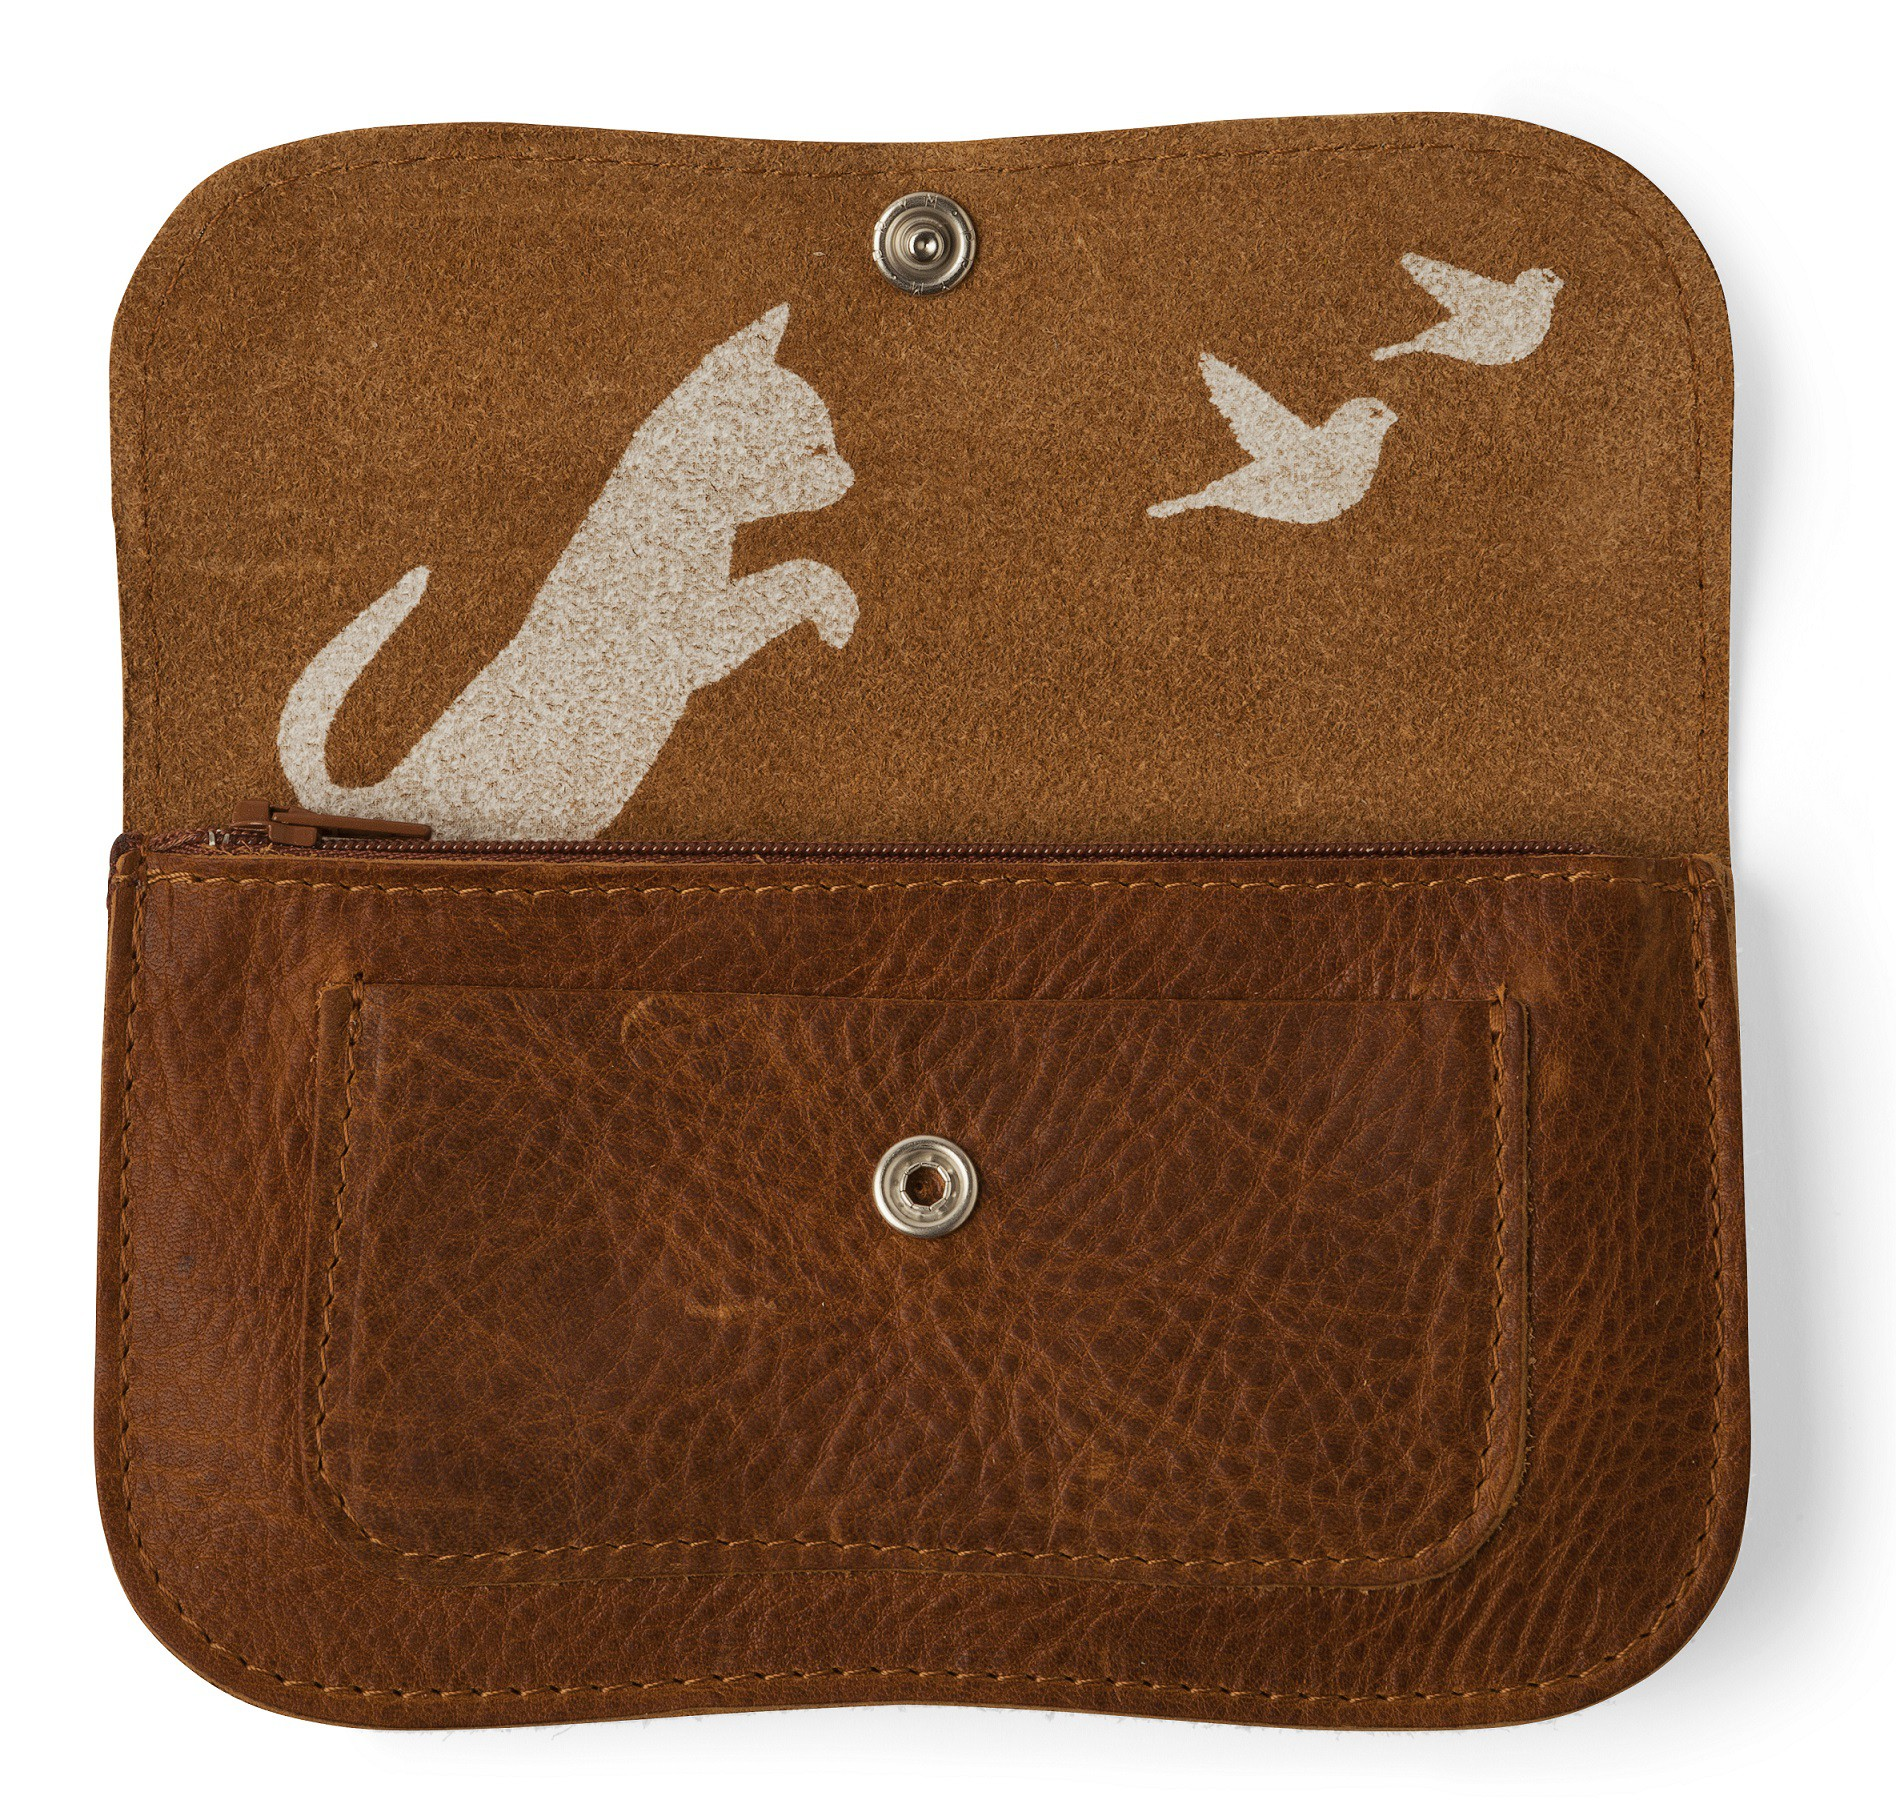 16bffd15222 ... Cat Chase Wallet from Keecie in Fresh Green | fresh green ...